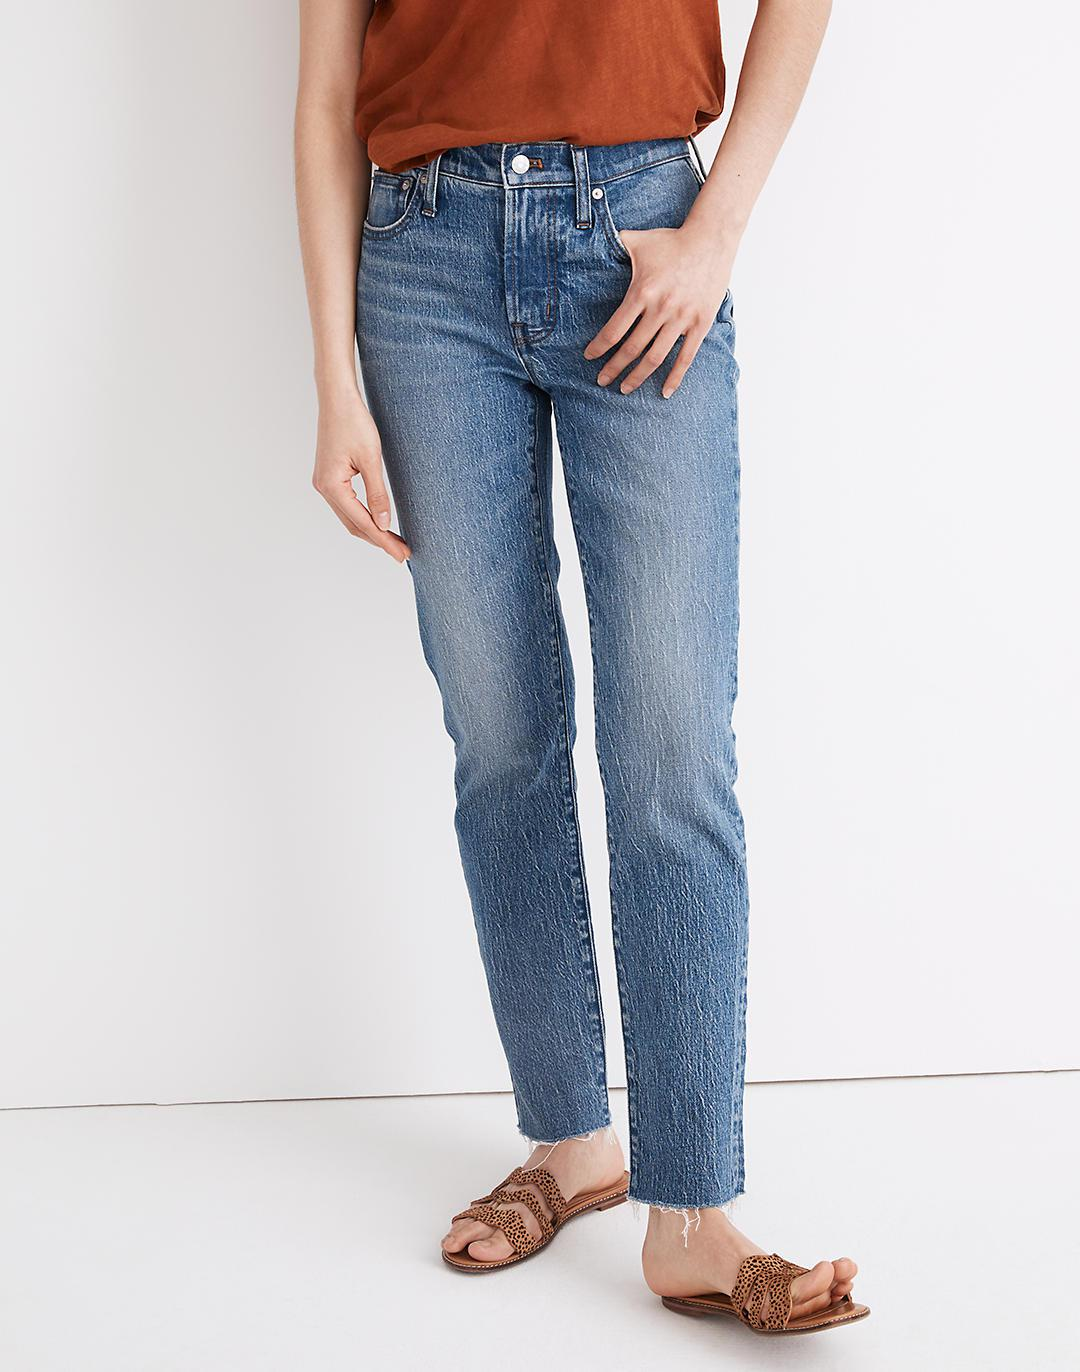 The Tall Mid-Rise Perfect Vintage Jean in Enmore Wash